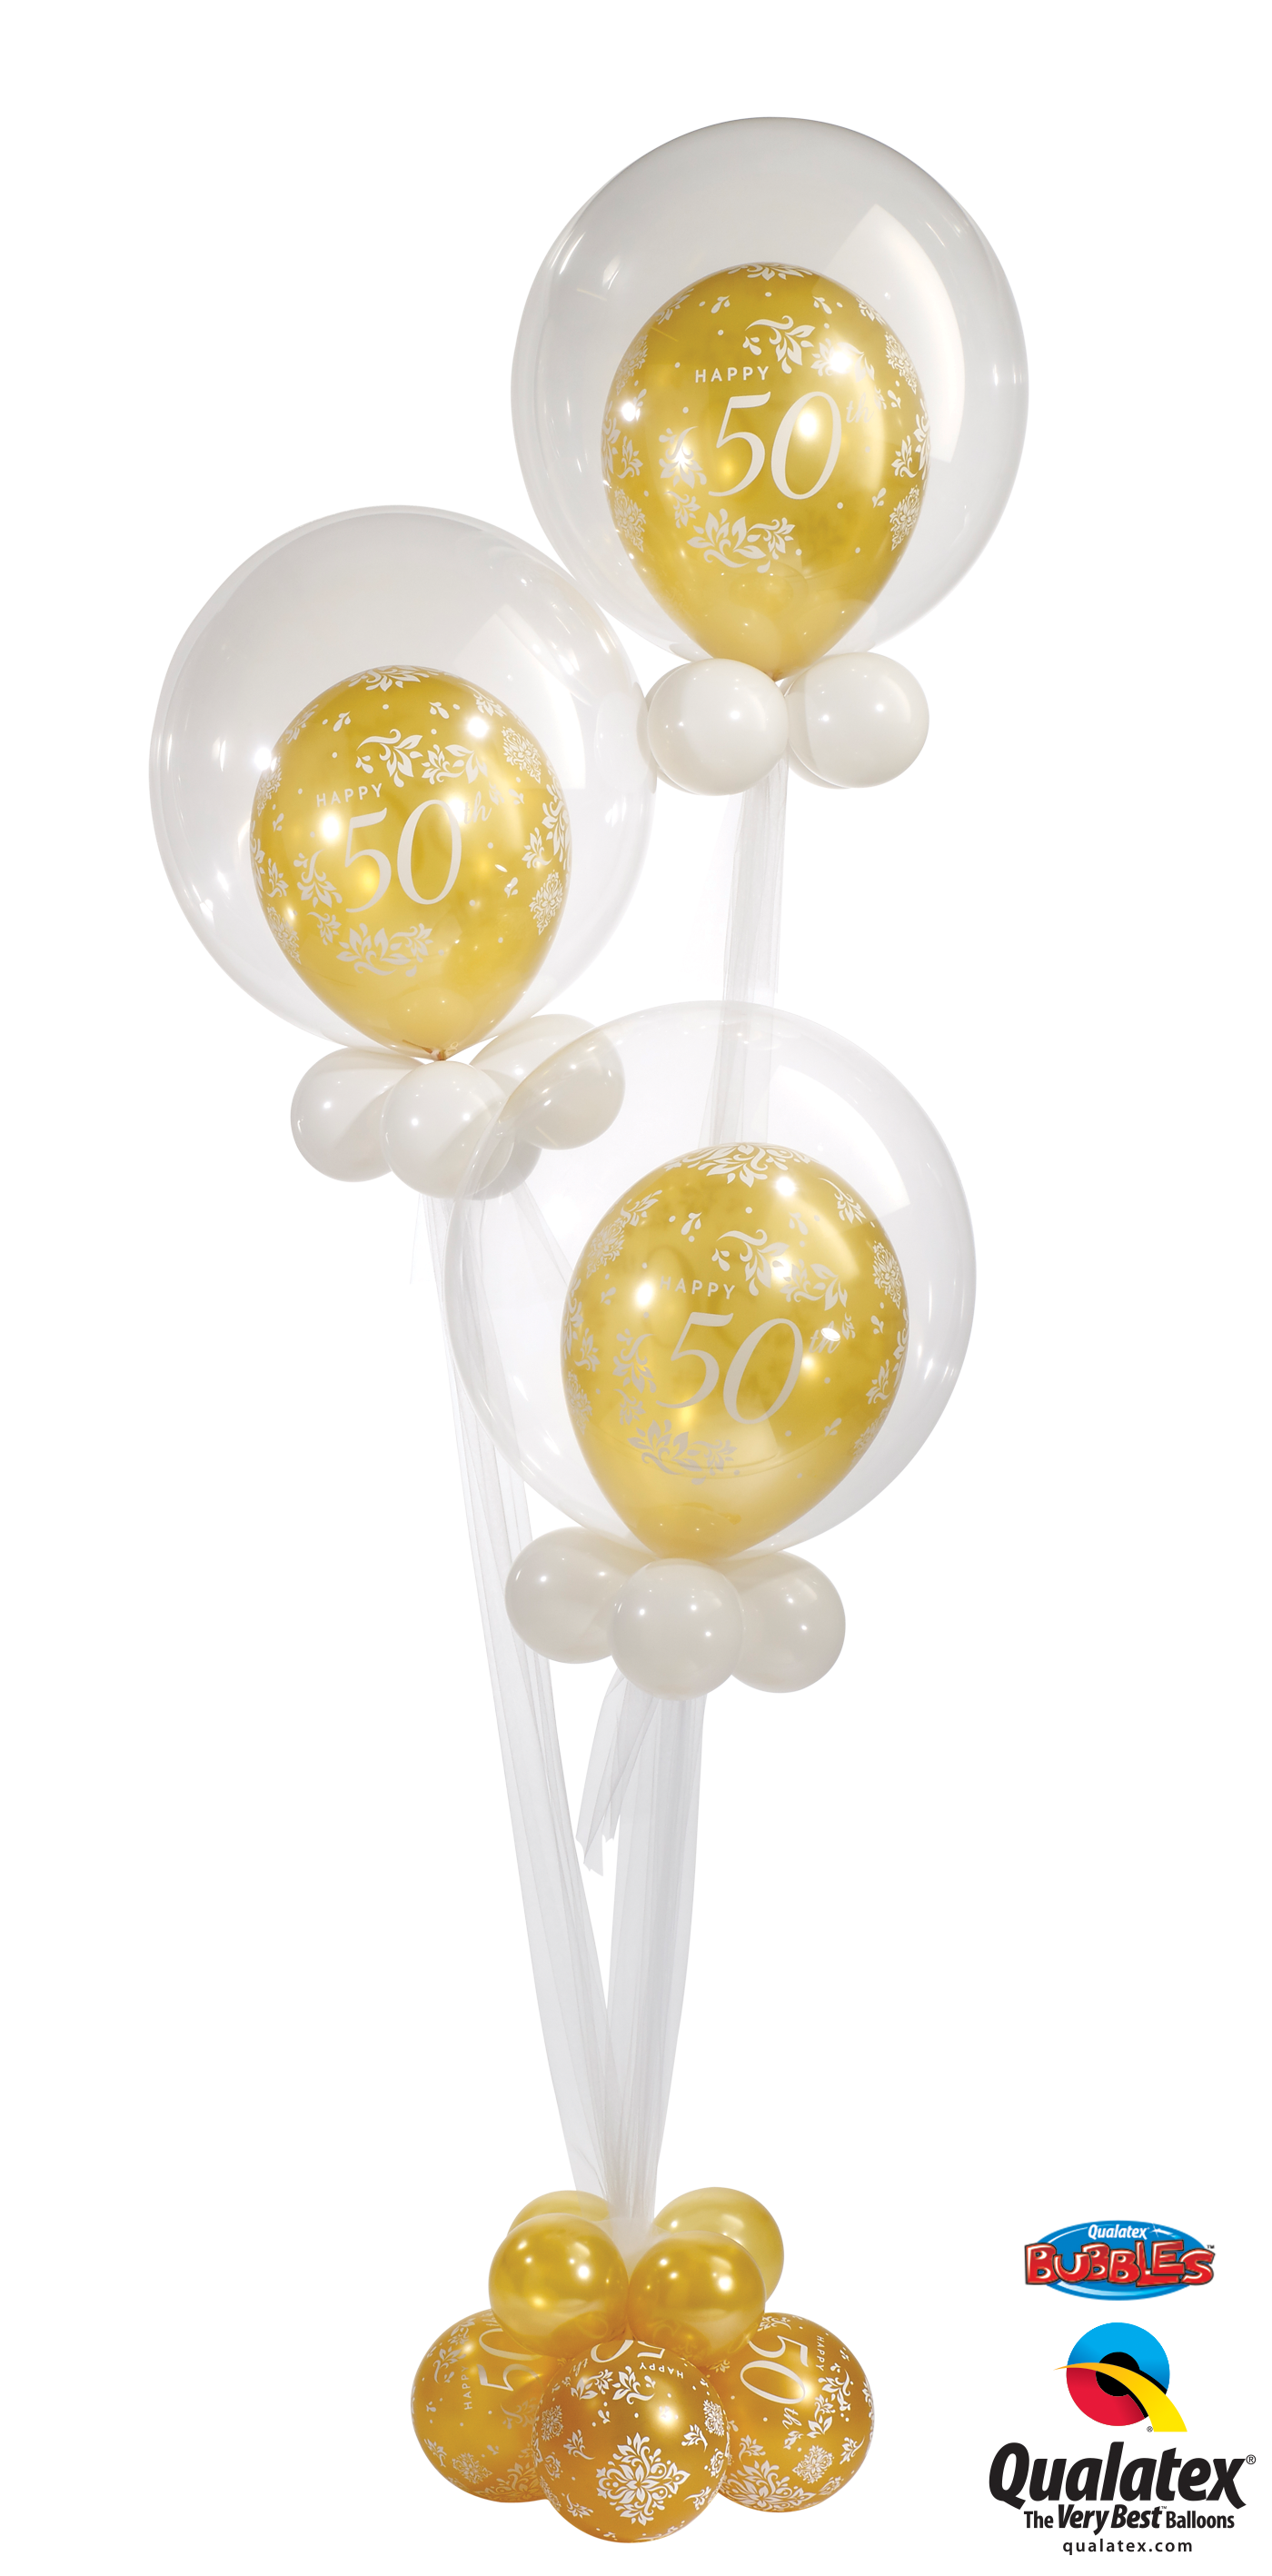 Triple Celebration Deco Bubble Balloon Bouquet